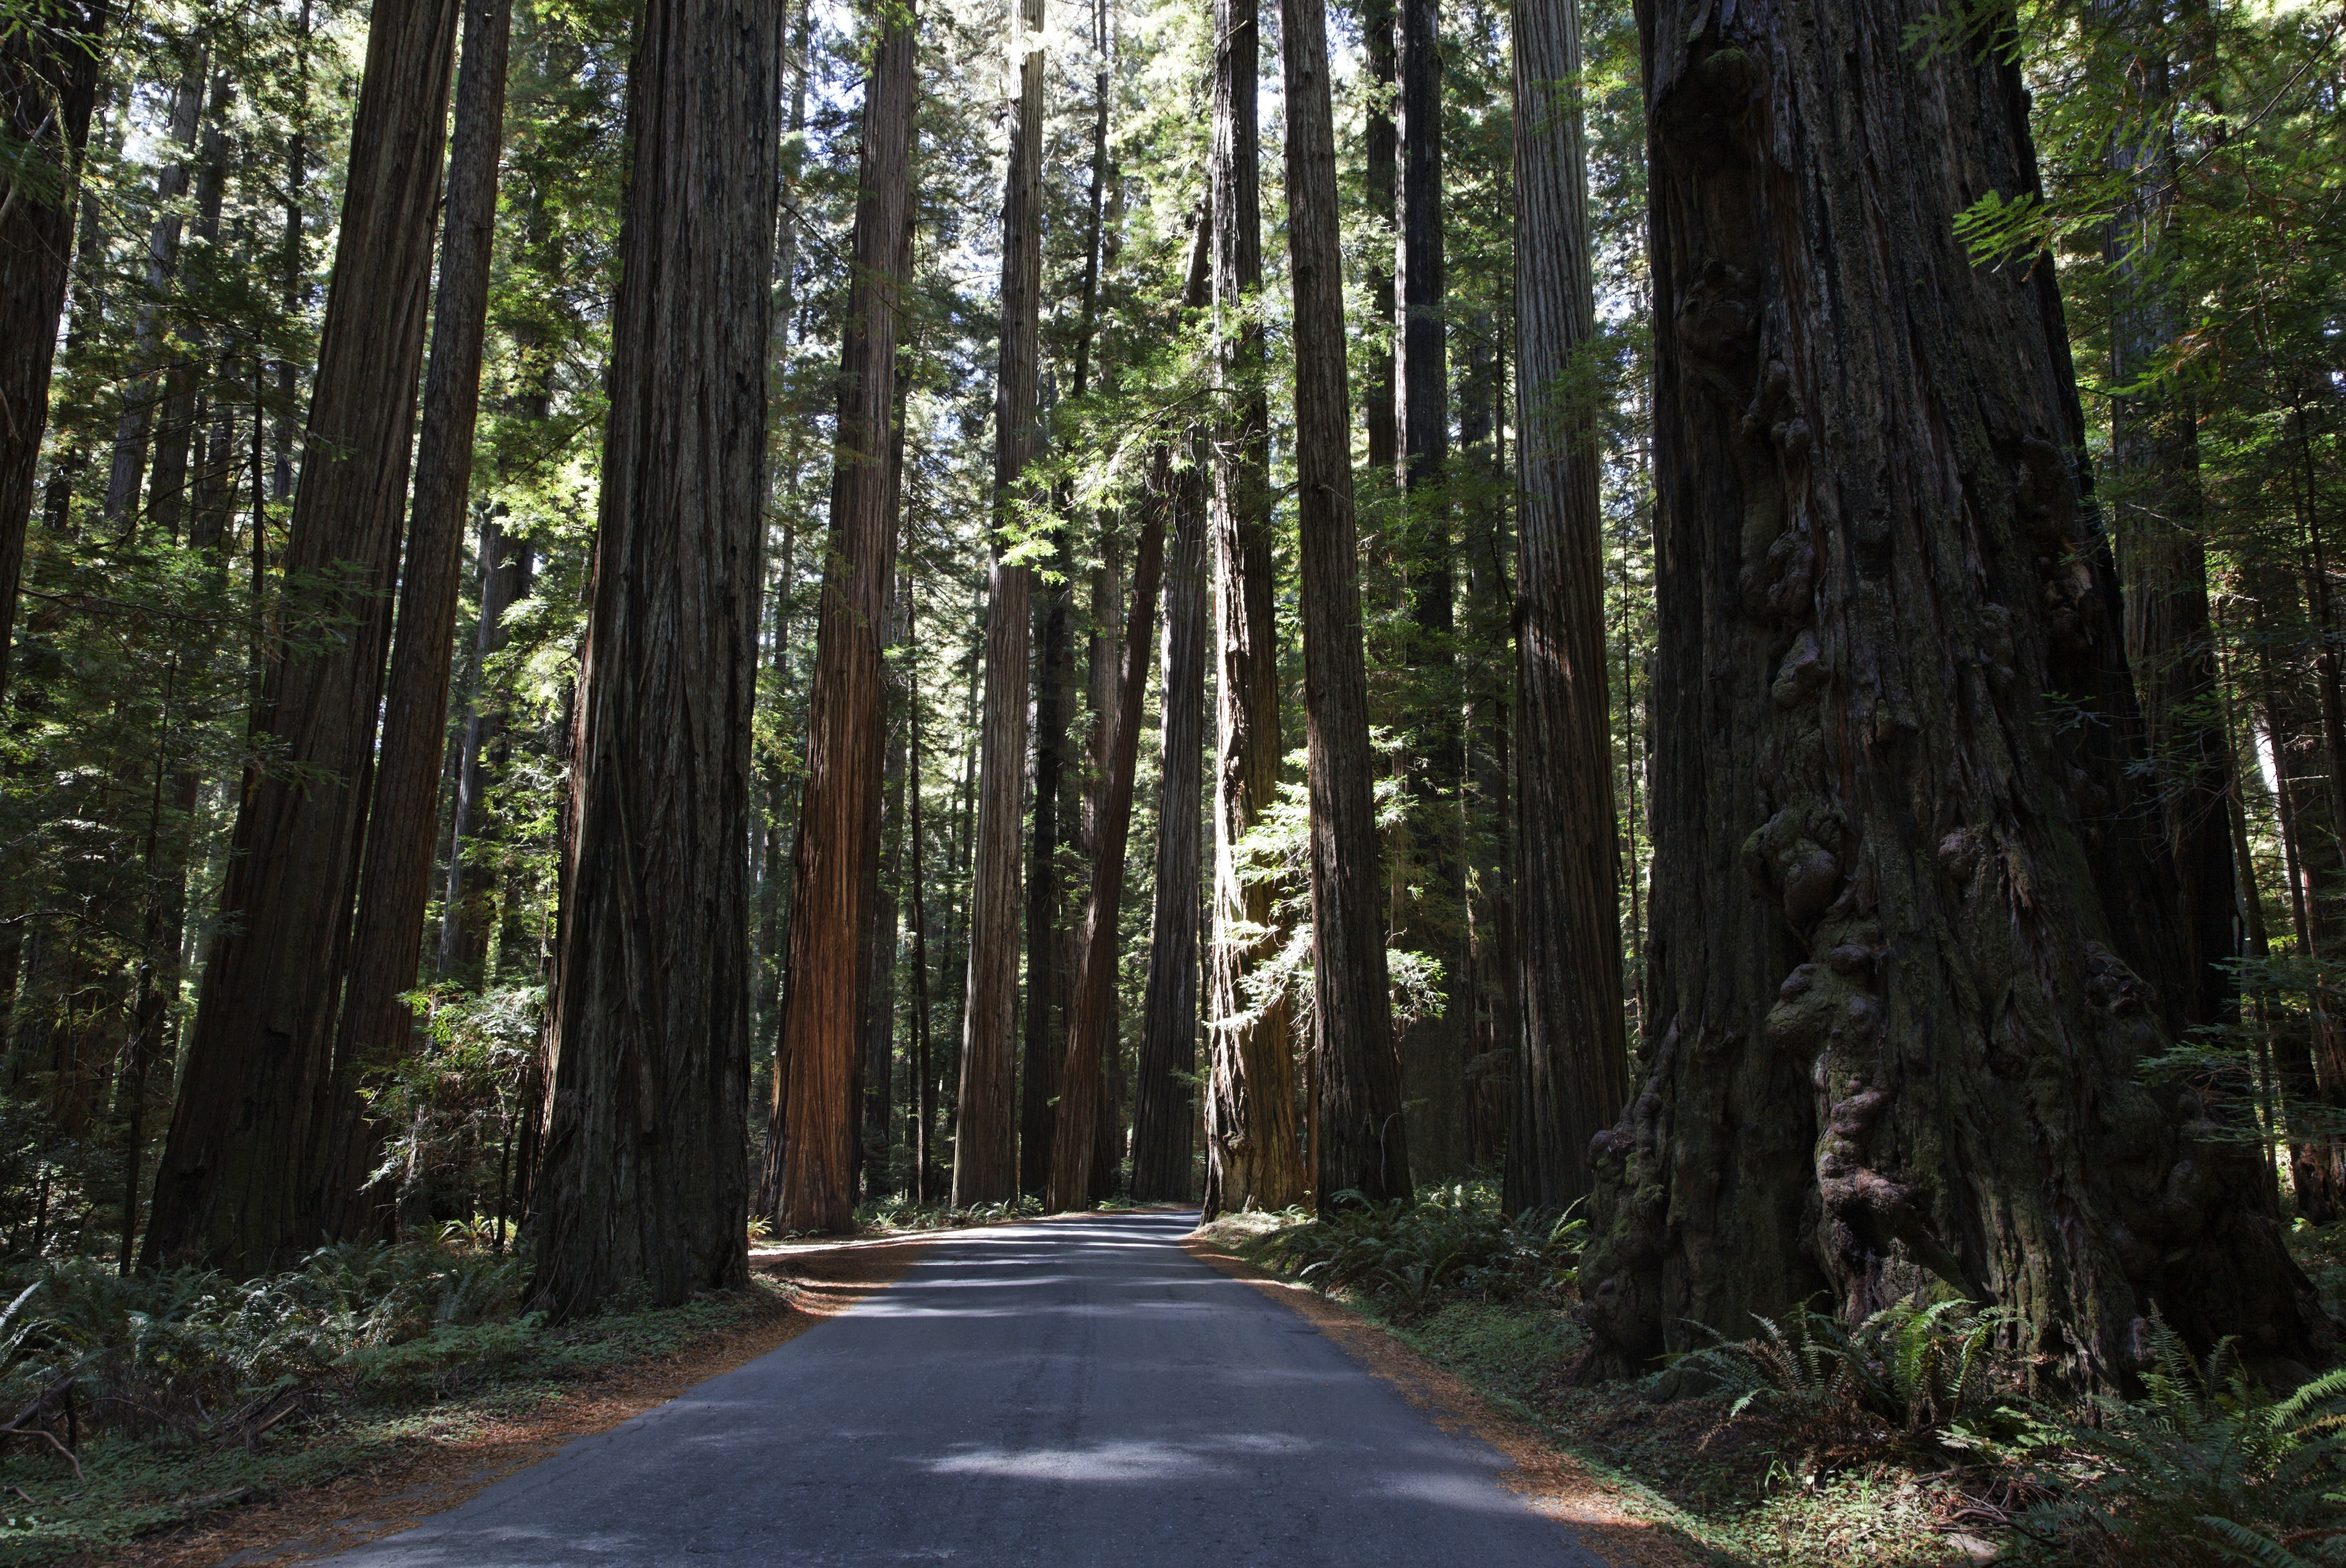 Road through Humboldt Redwoods State Park, in California's Humboldt County, on Sept. 1, 2011